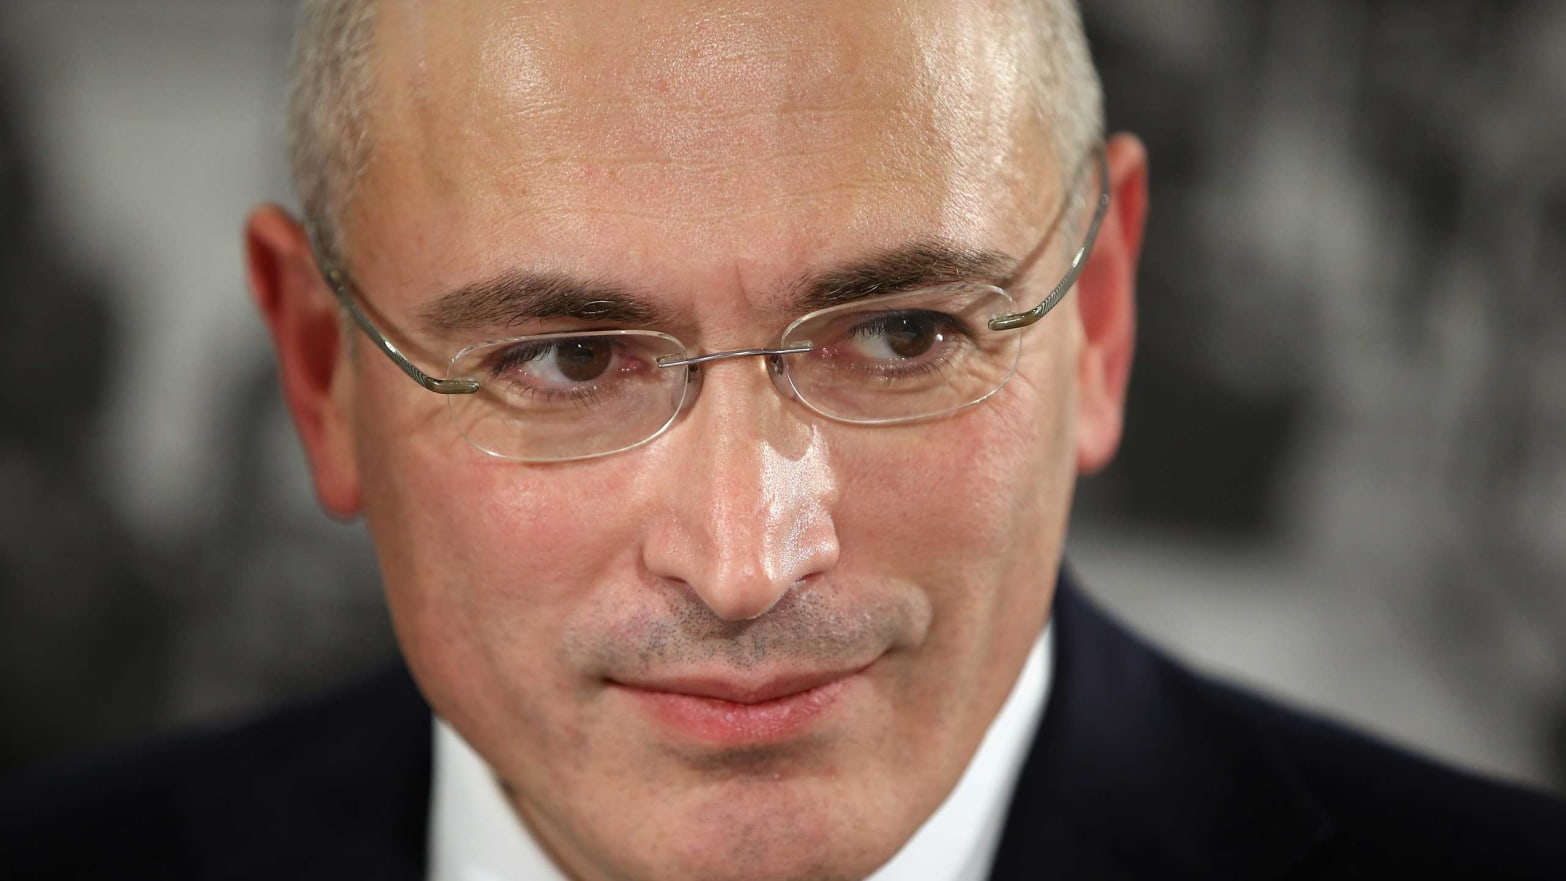 Mikhail Khodorkovsky, Putin's Most Powerful Critic-in-Exile, Says He's Living Under a Kill Order